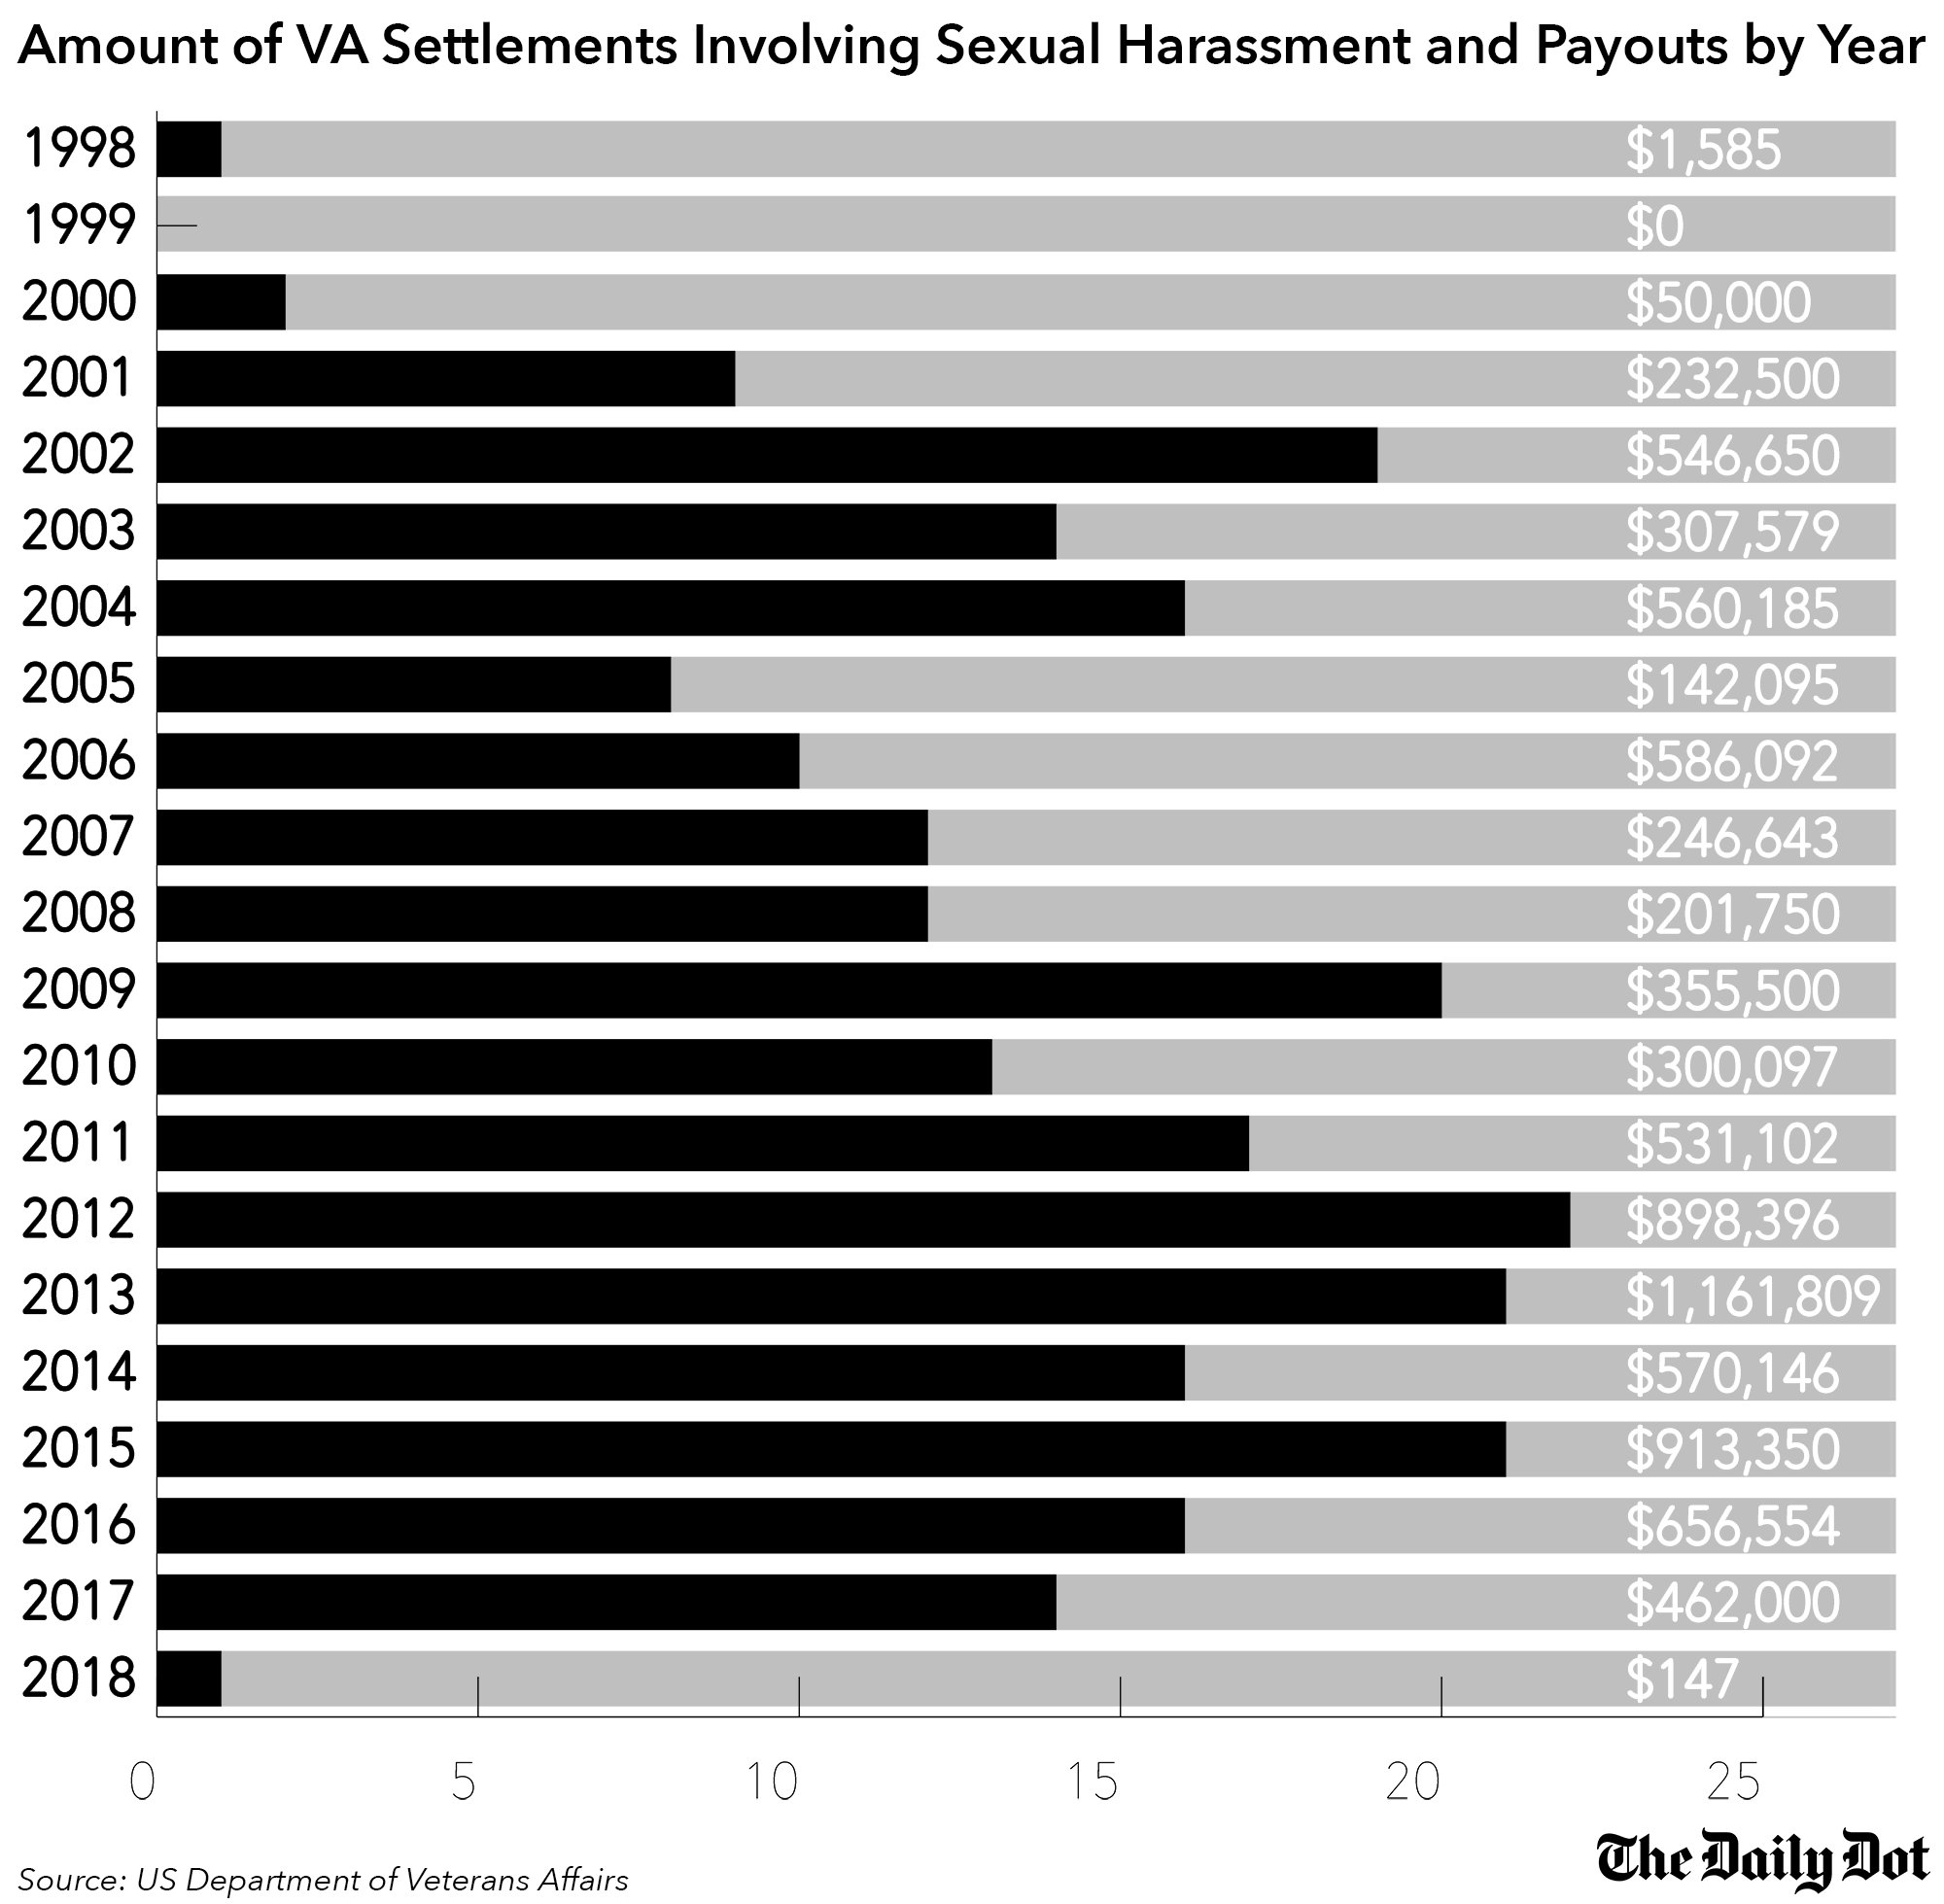 Sex discrimination settlement amounts